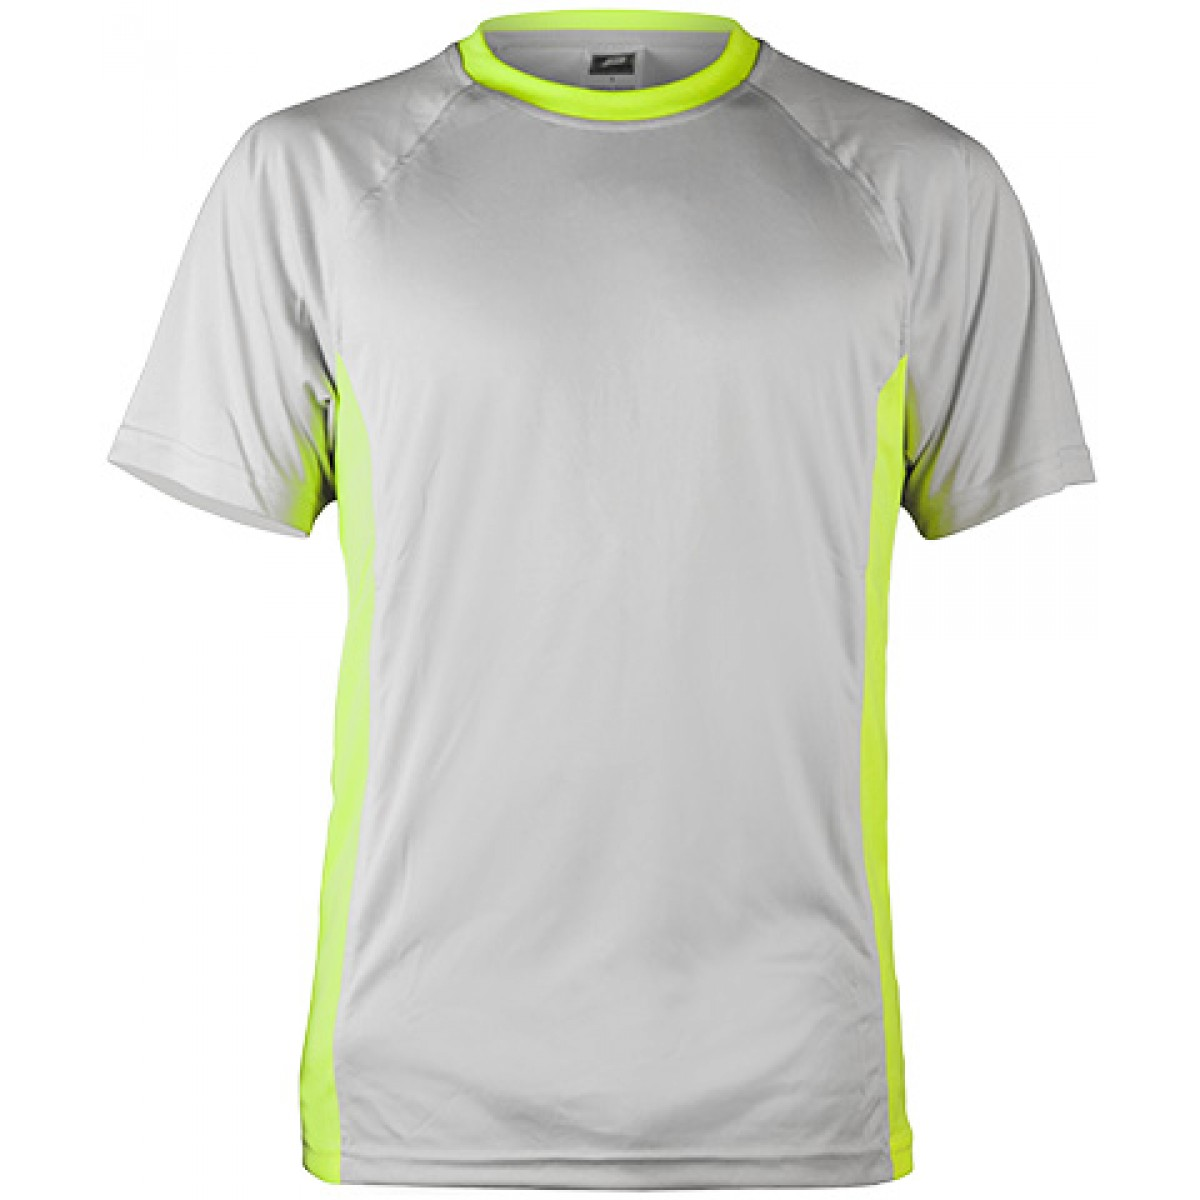 Short Sleeve Performance Fit with Flat-back Mesh Side Insert-Gray/Green-2XL